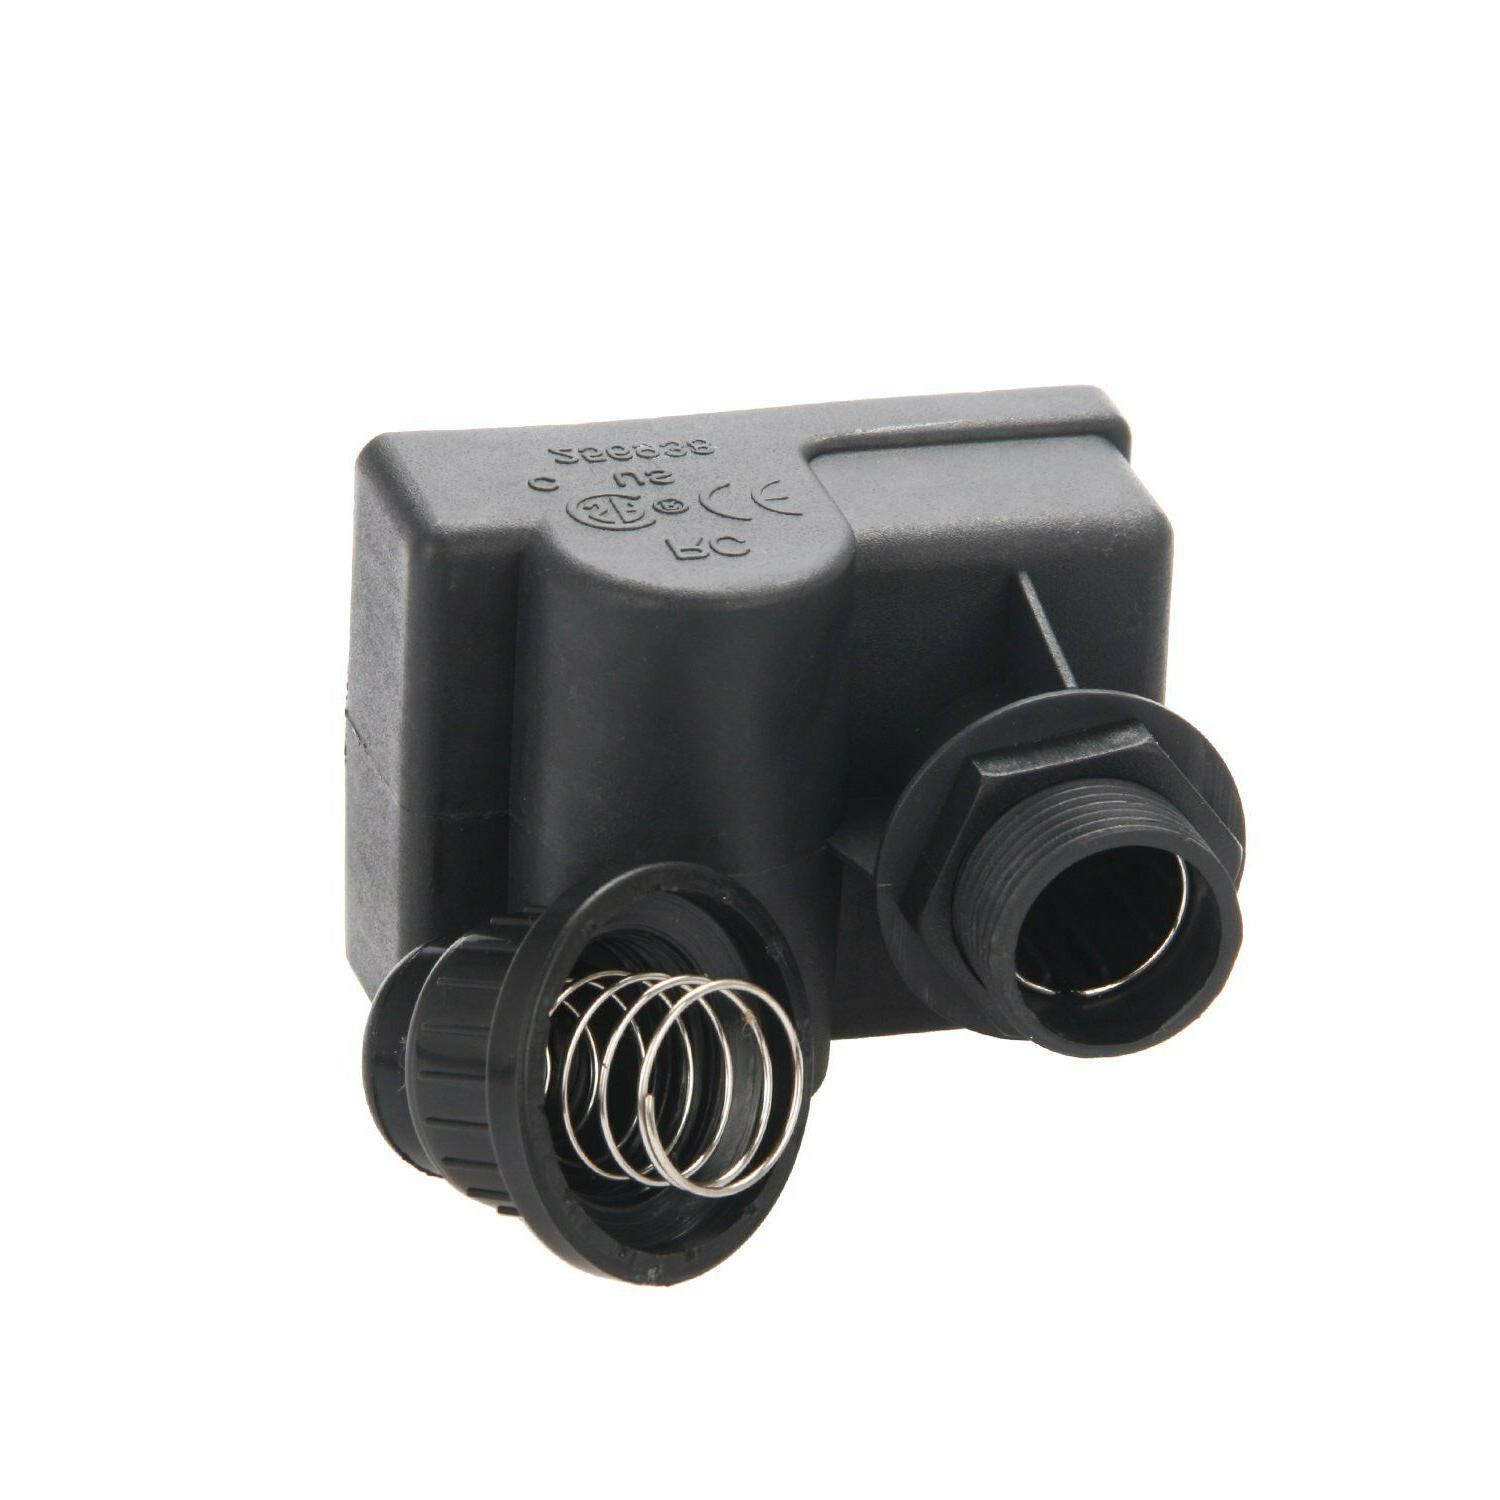 Black 3 Outlet Outdoor Cooking BBQ Gas Grill Push Button MBP